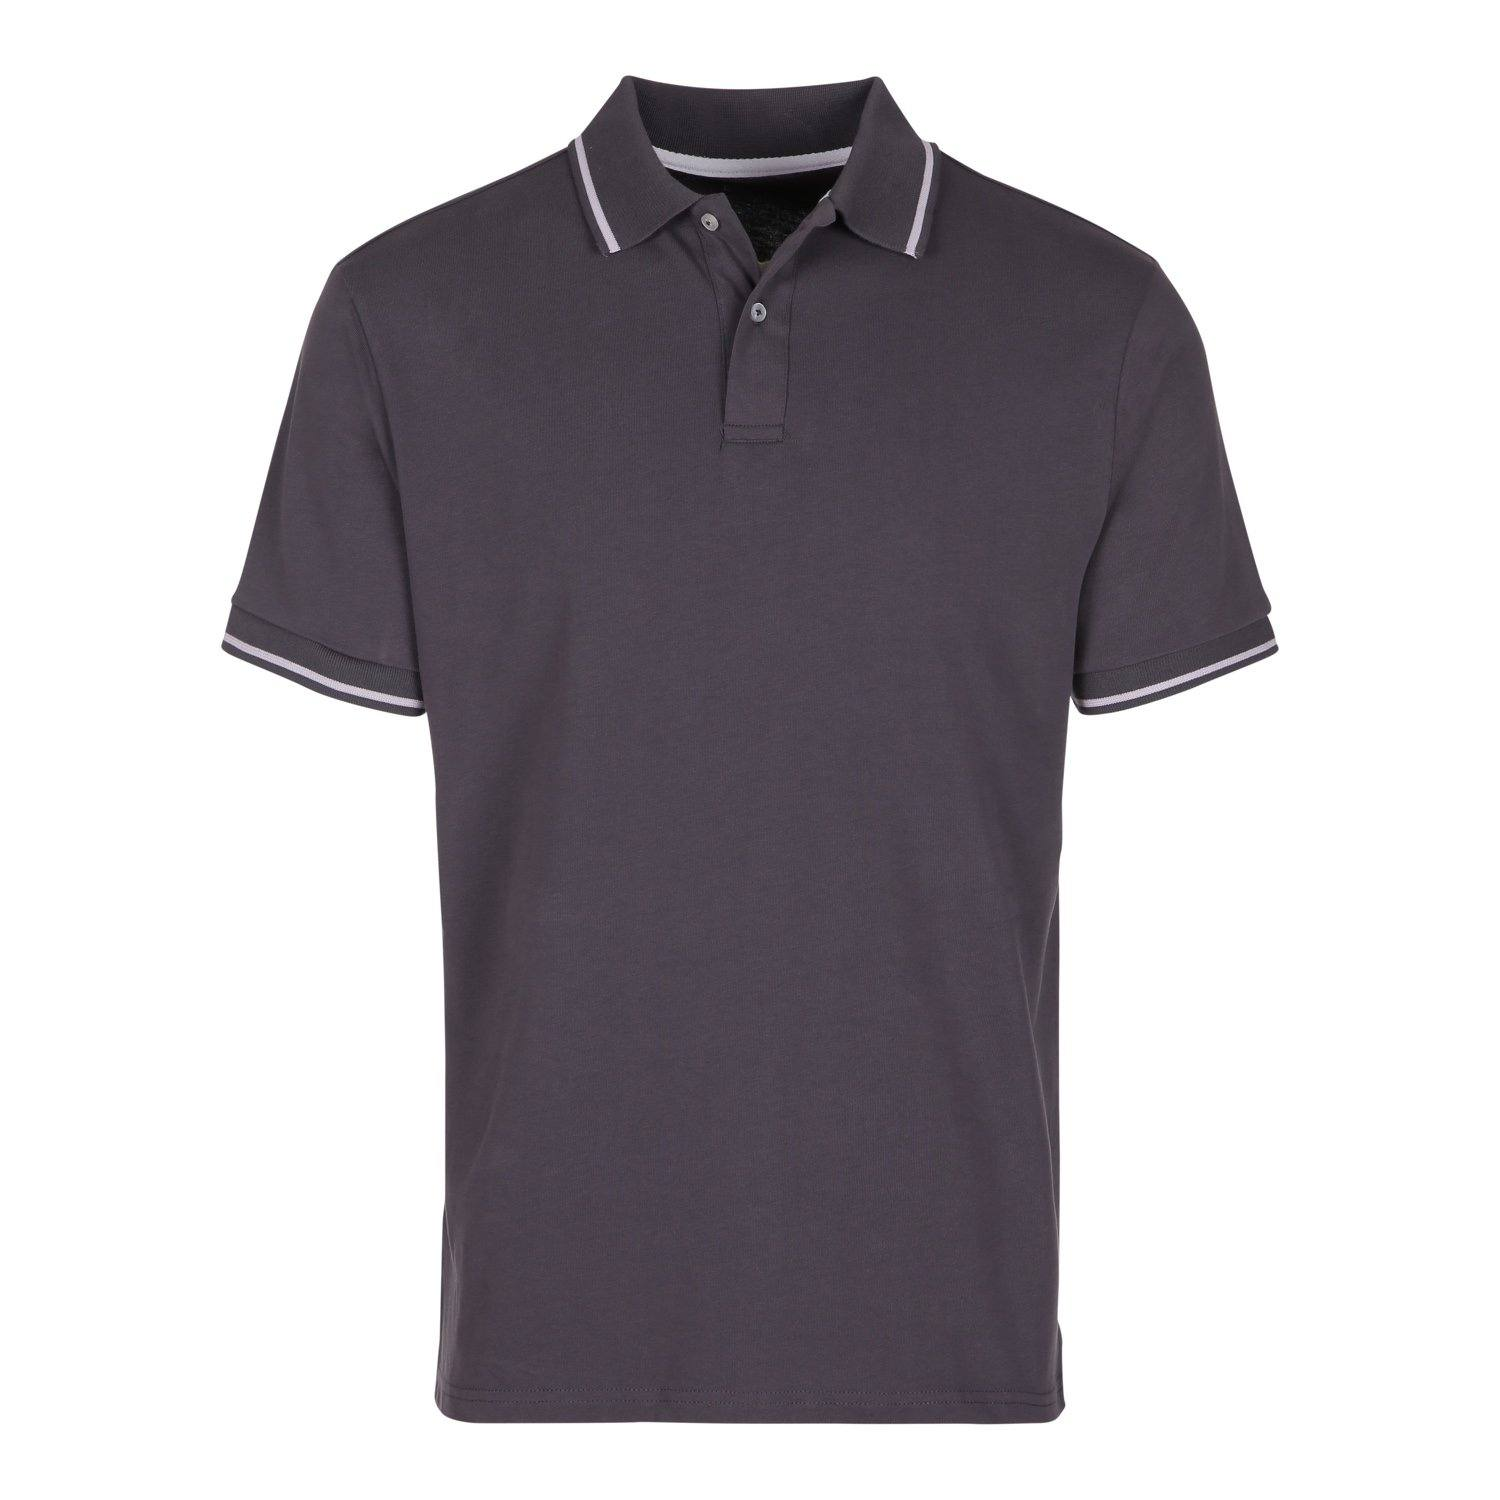 Hurlingham – Grey Polo shirt – Poloshirts – Sumisura